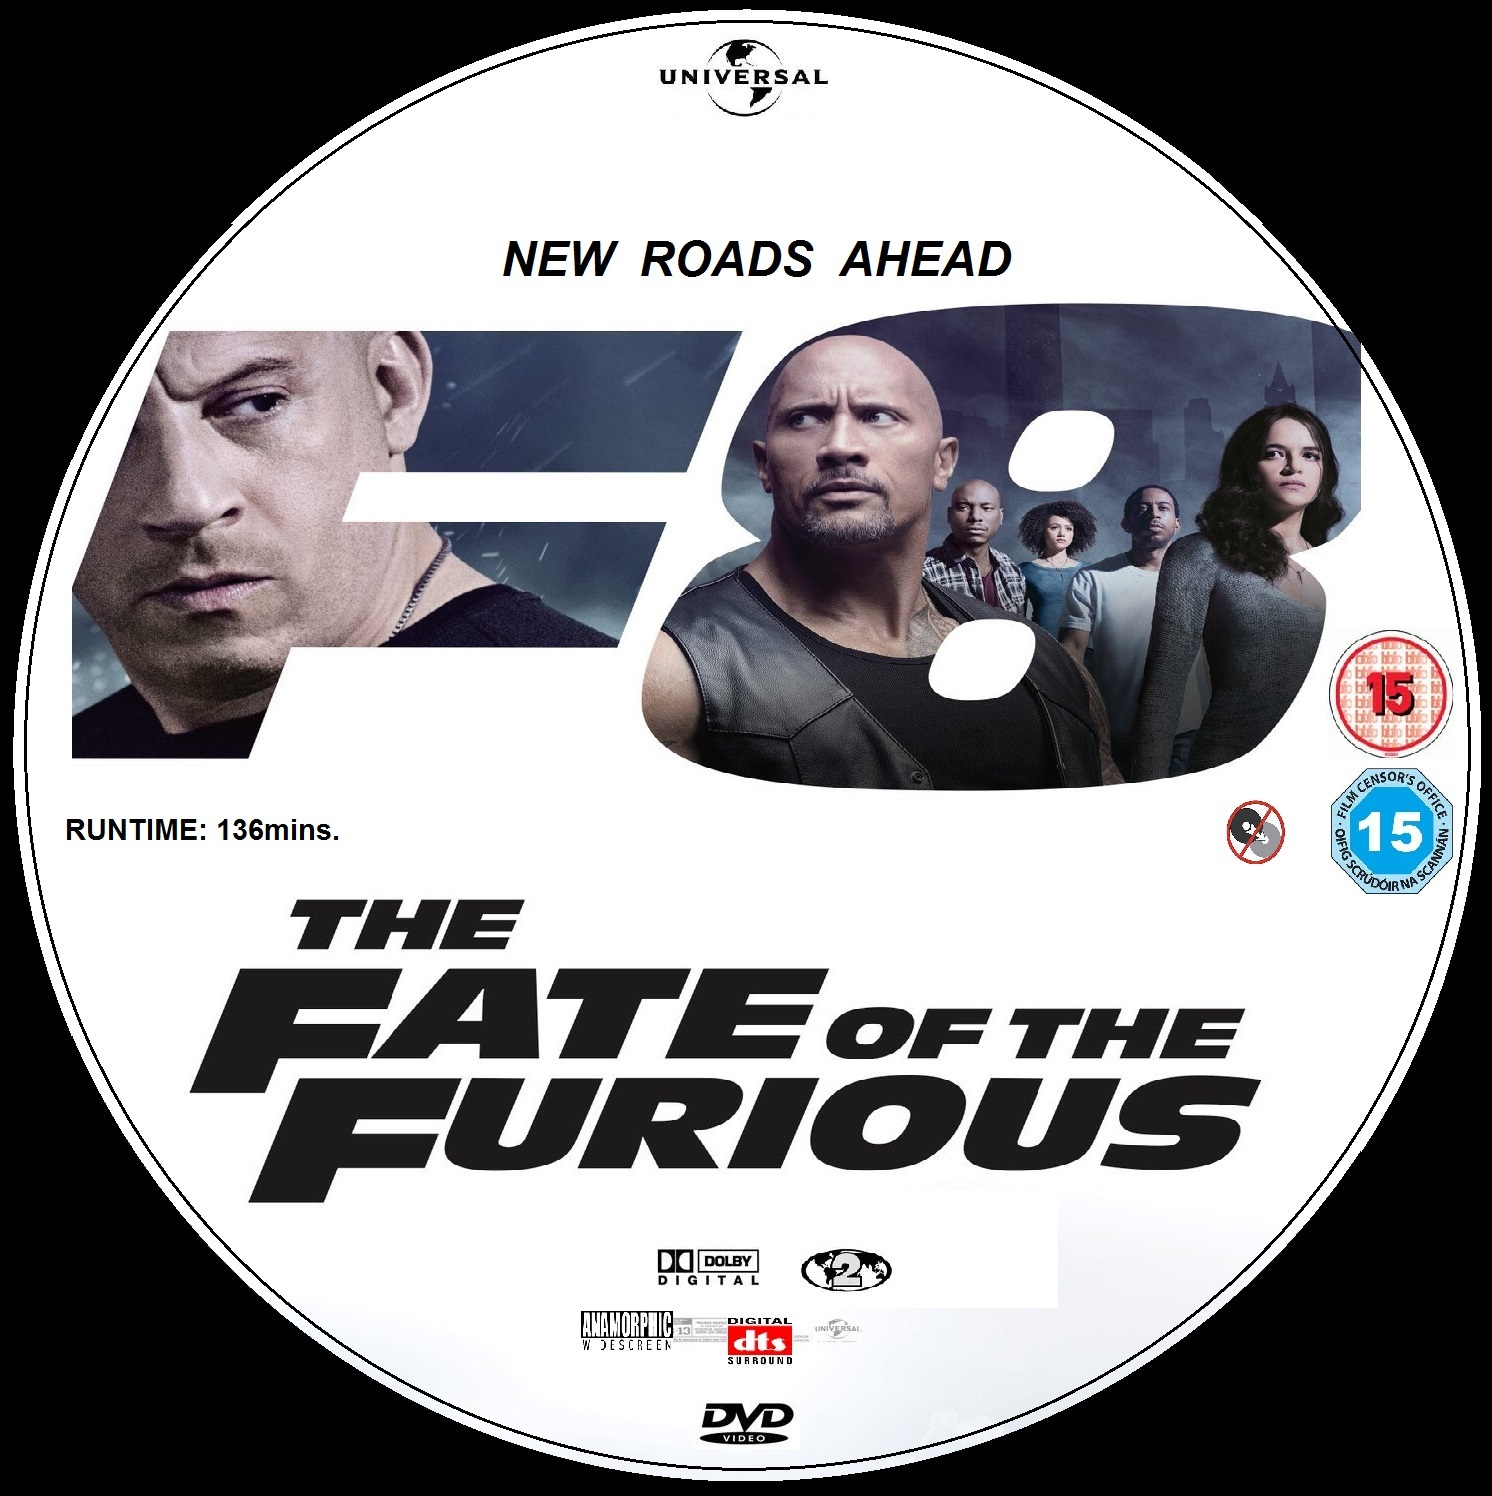 covers teste gtba the fate of the furious 2017 r2 cover label